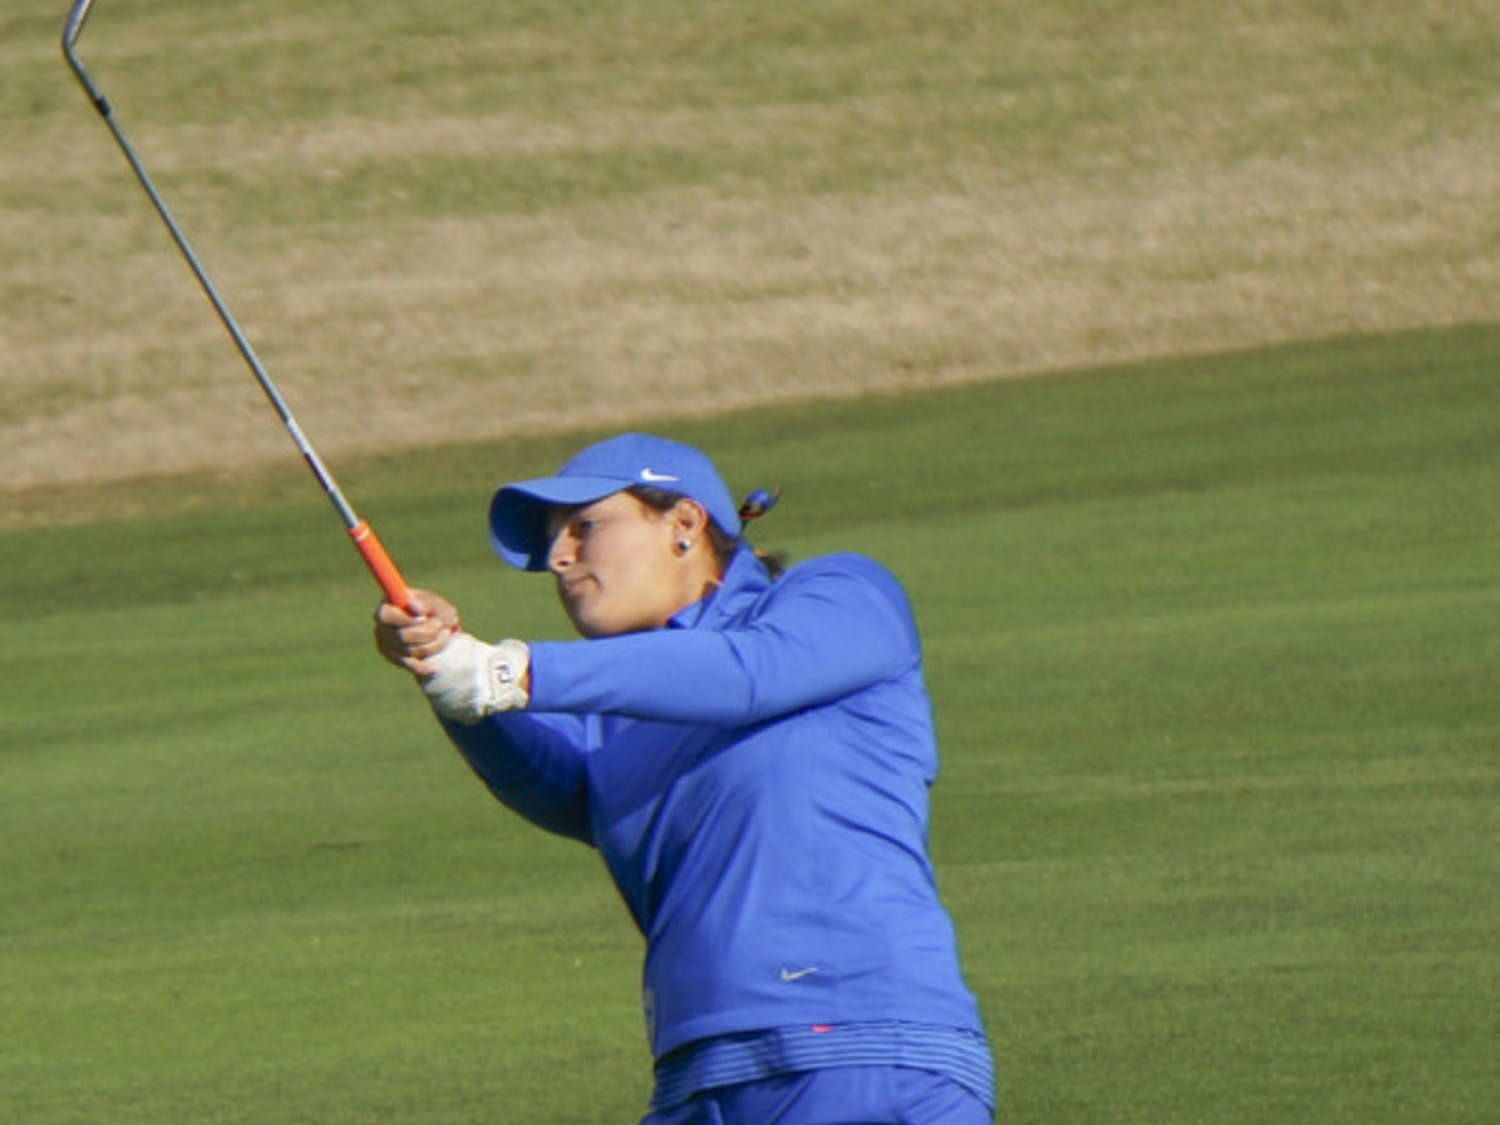 Maria Torres tees off during the 2015 SunTrust Gator Invitational at UF's Mark Bostick Golf Course.